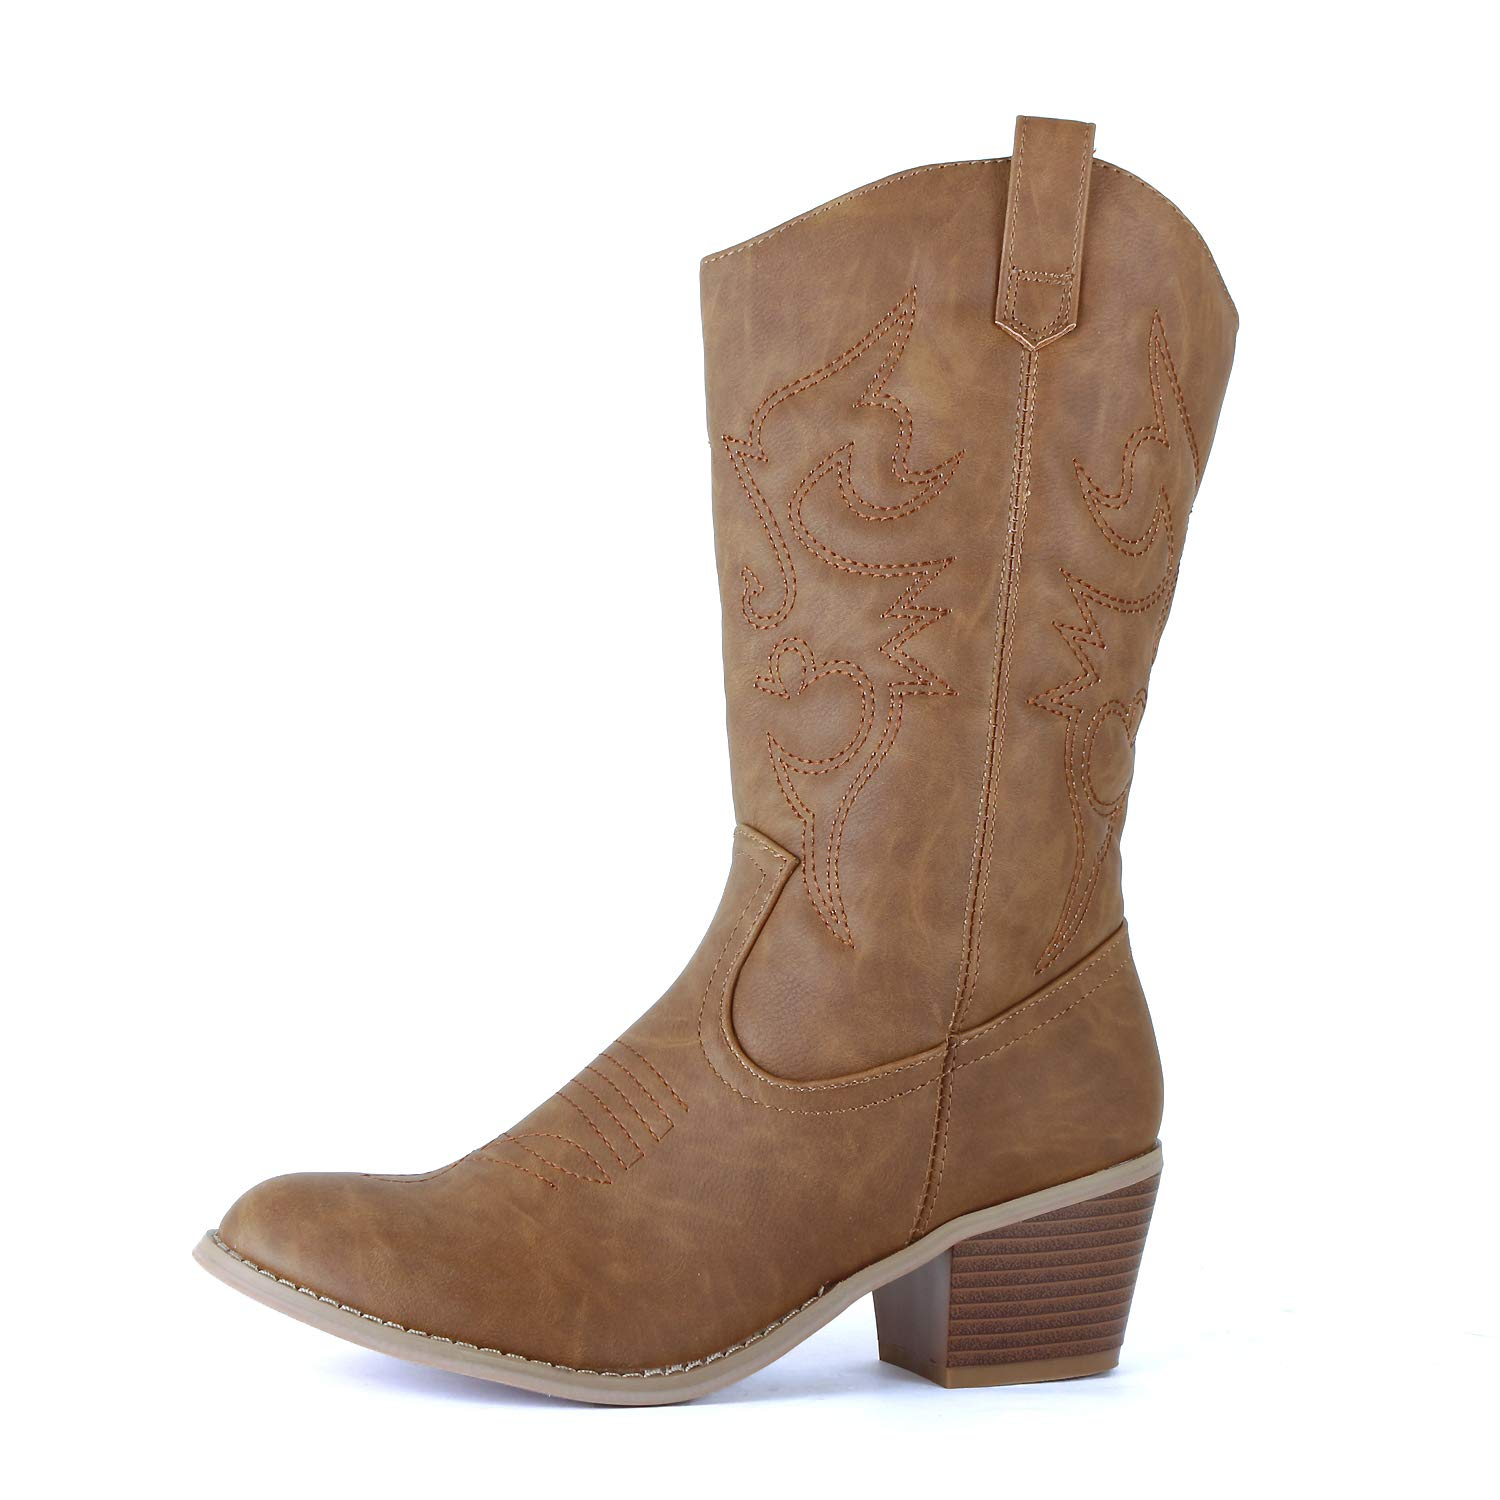 West Blvd - Womens Miami Cowboy Western Boots (8.5 B(M) US, Chestnut Pu)